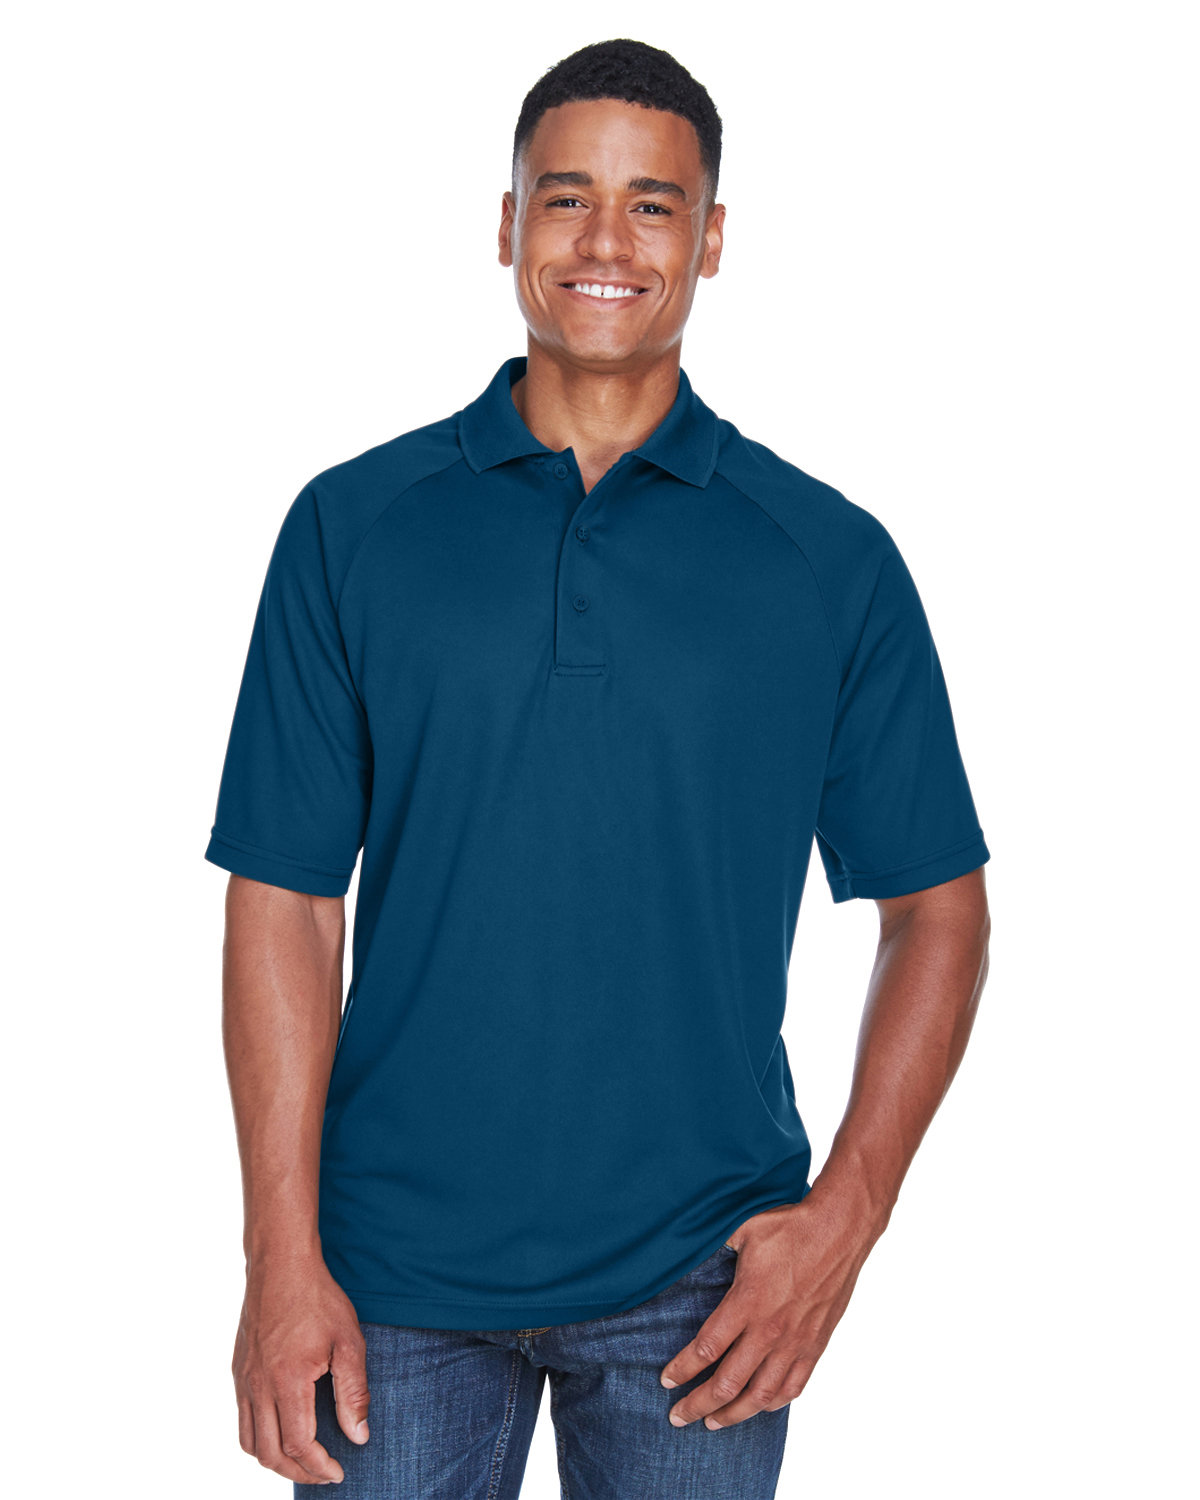 Extreme Men's Eperformance™ Piqué Polo CERAMIC BLUE